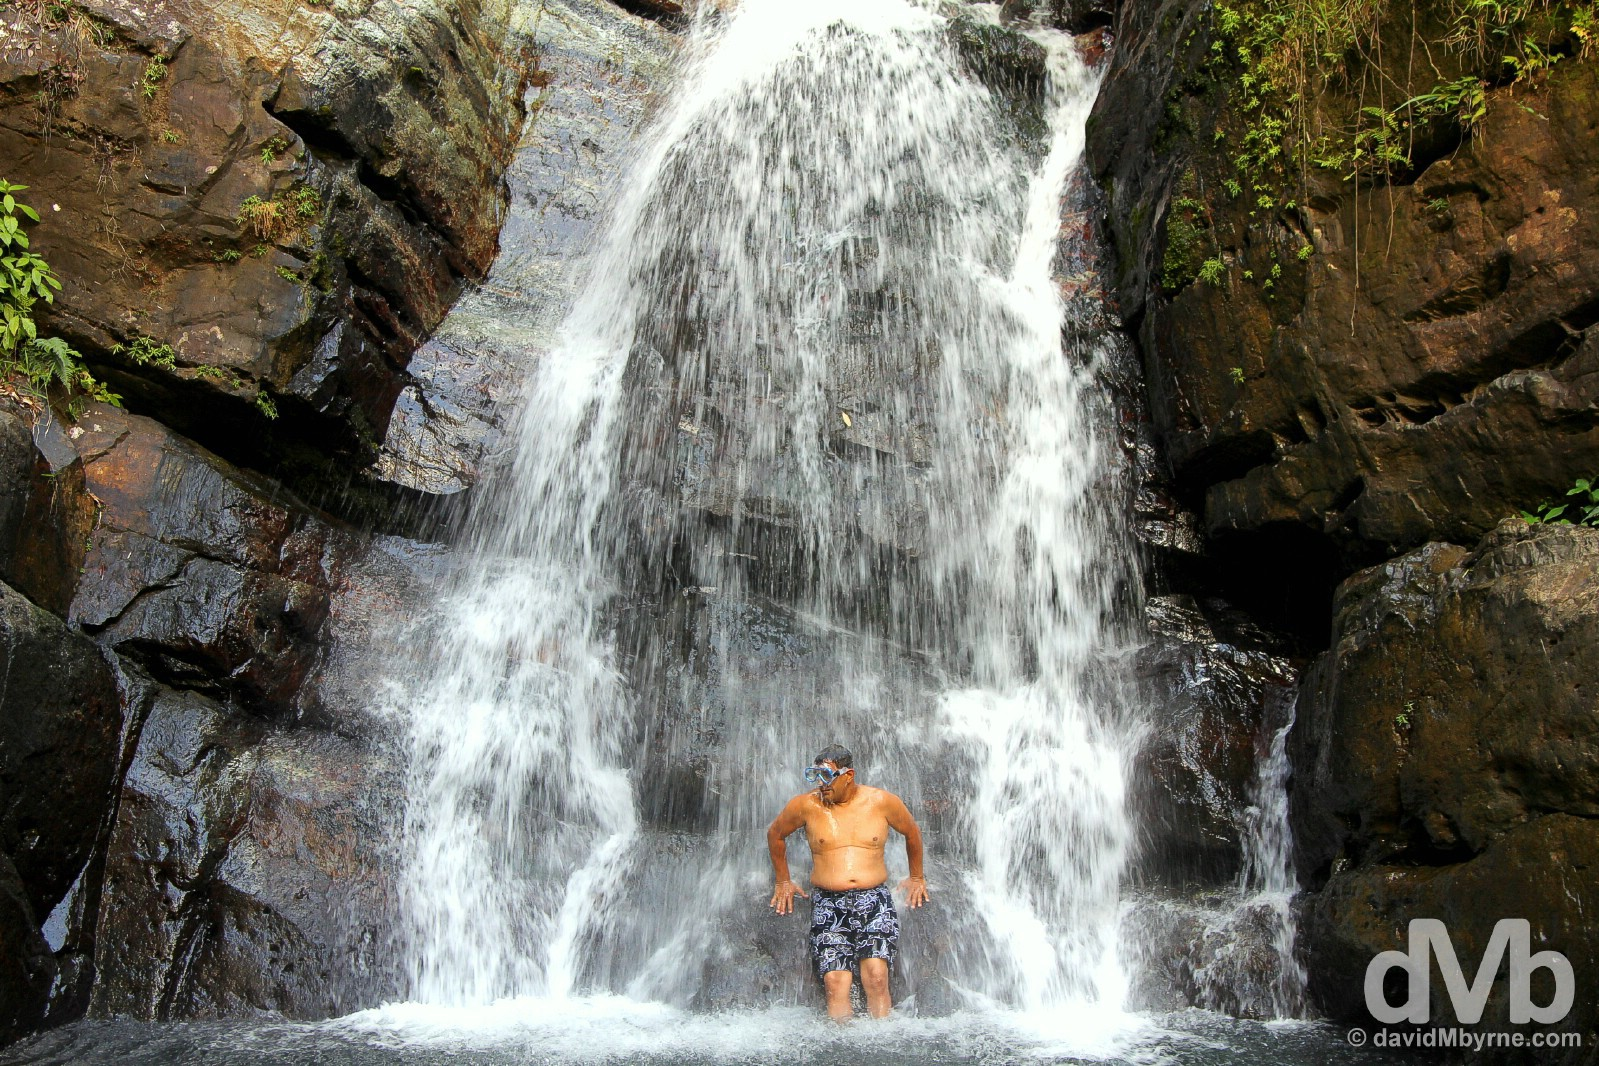 Cooling down in La Mina Falls of El Yunque National Forest, eastern Puerto Rico, Greater Antilles. June 5, 2015.